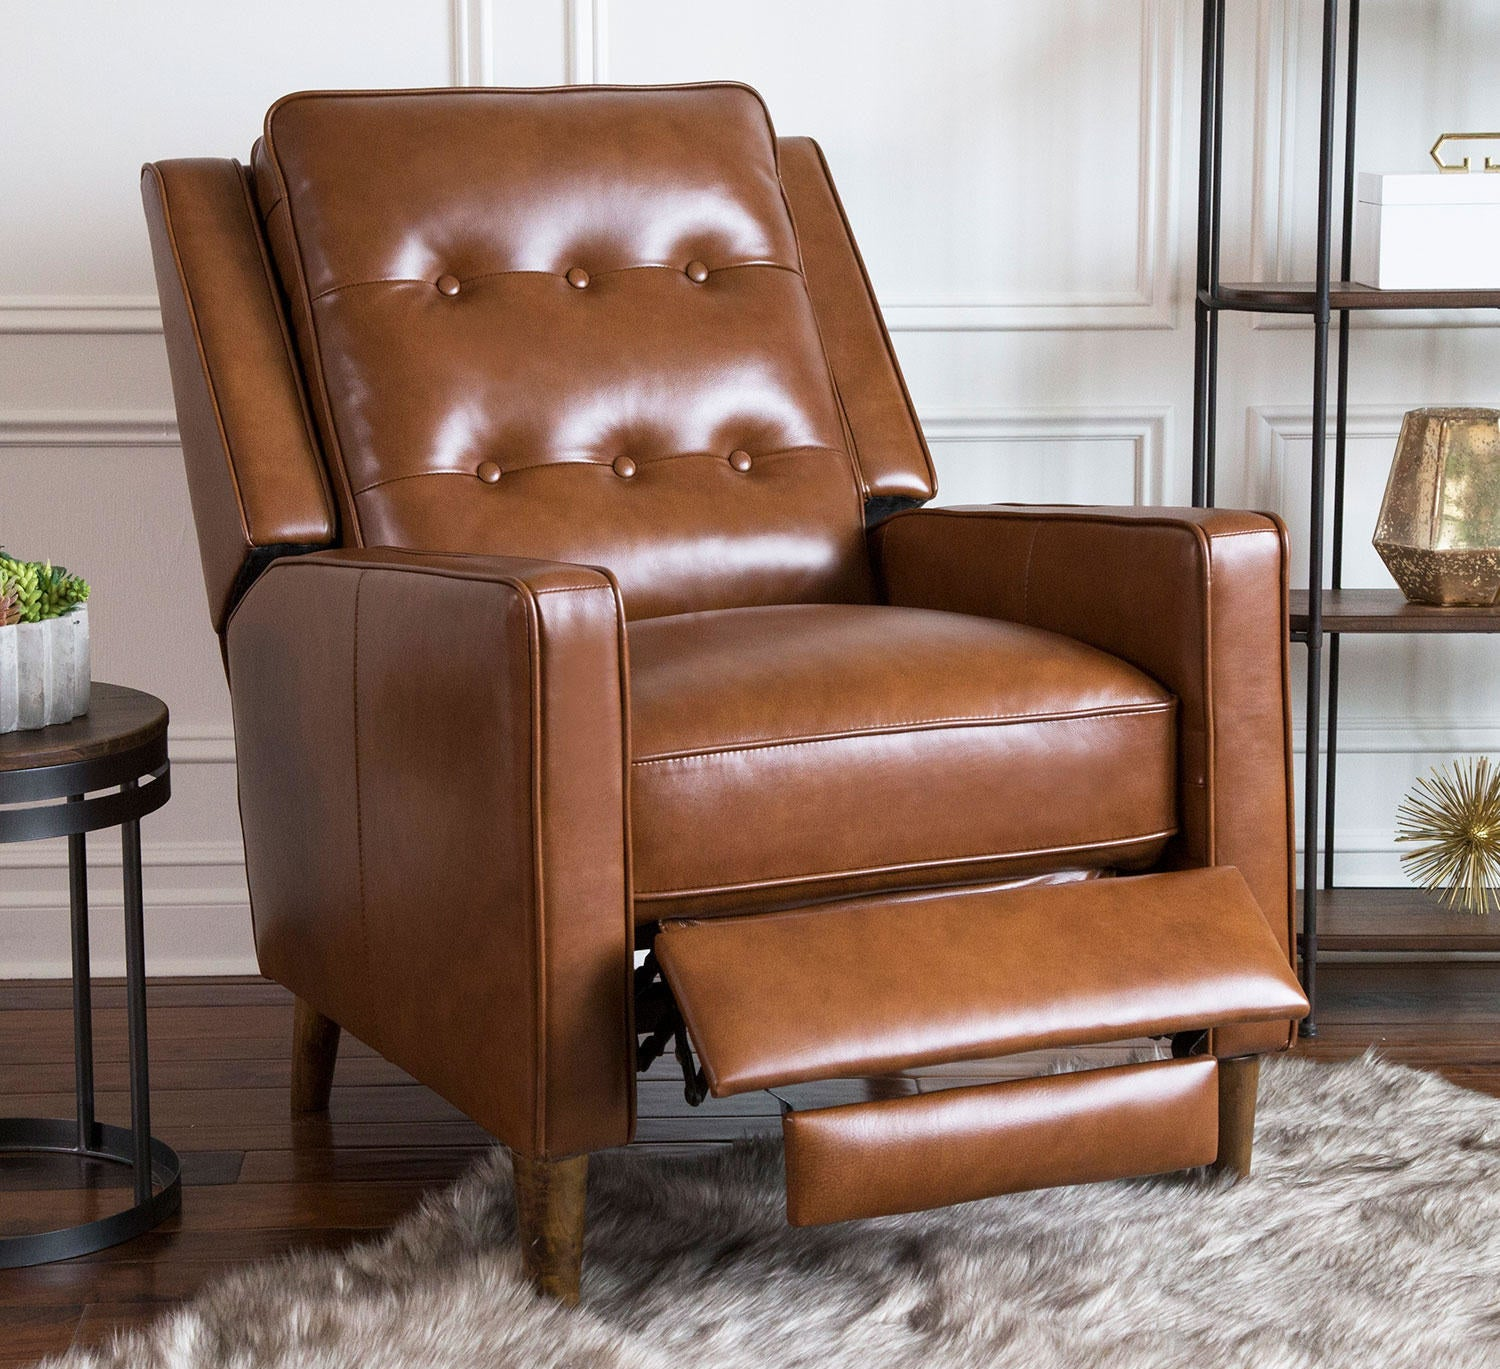 The brown leather recliner, which has a footrest